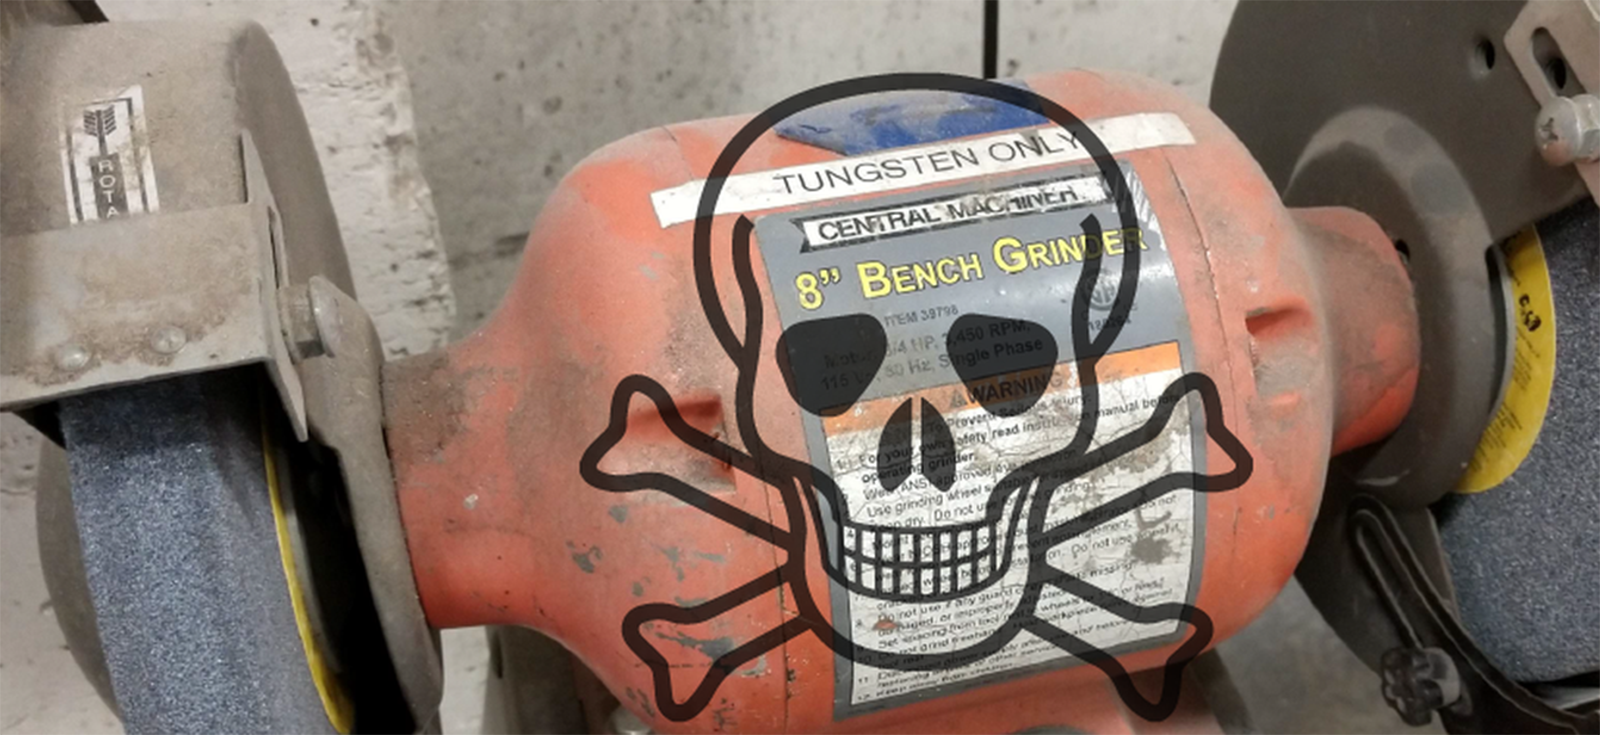 Enjoyable Stopping A Bench Grinder Quickly Hackaday Machost Co Dining Chair Design Ideas Machostcouk